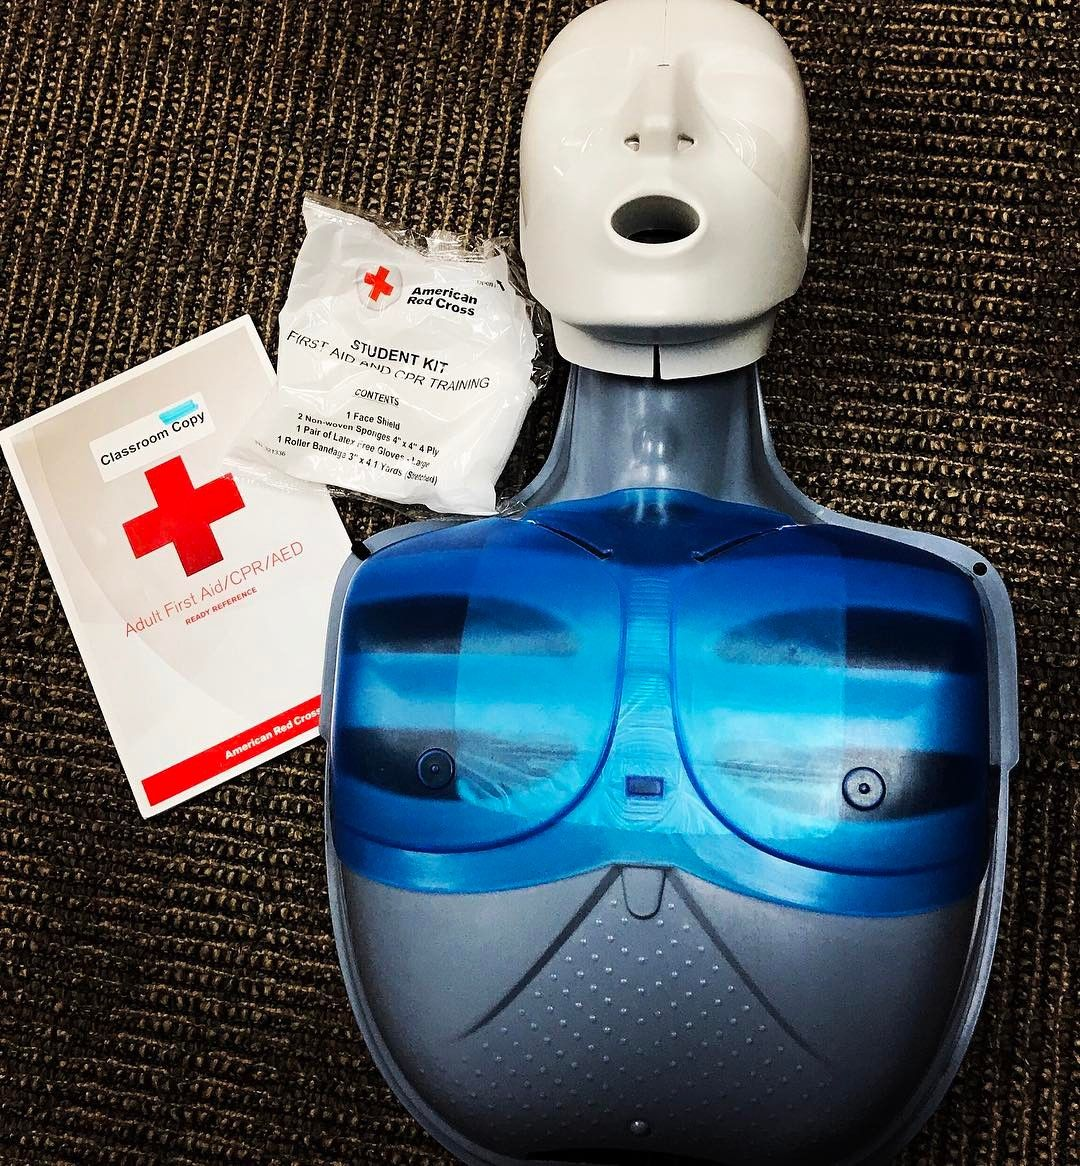 Cpr Training For Osha Certification I Have A Long Way To Go But I